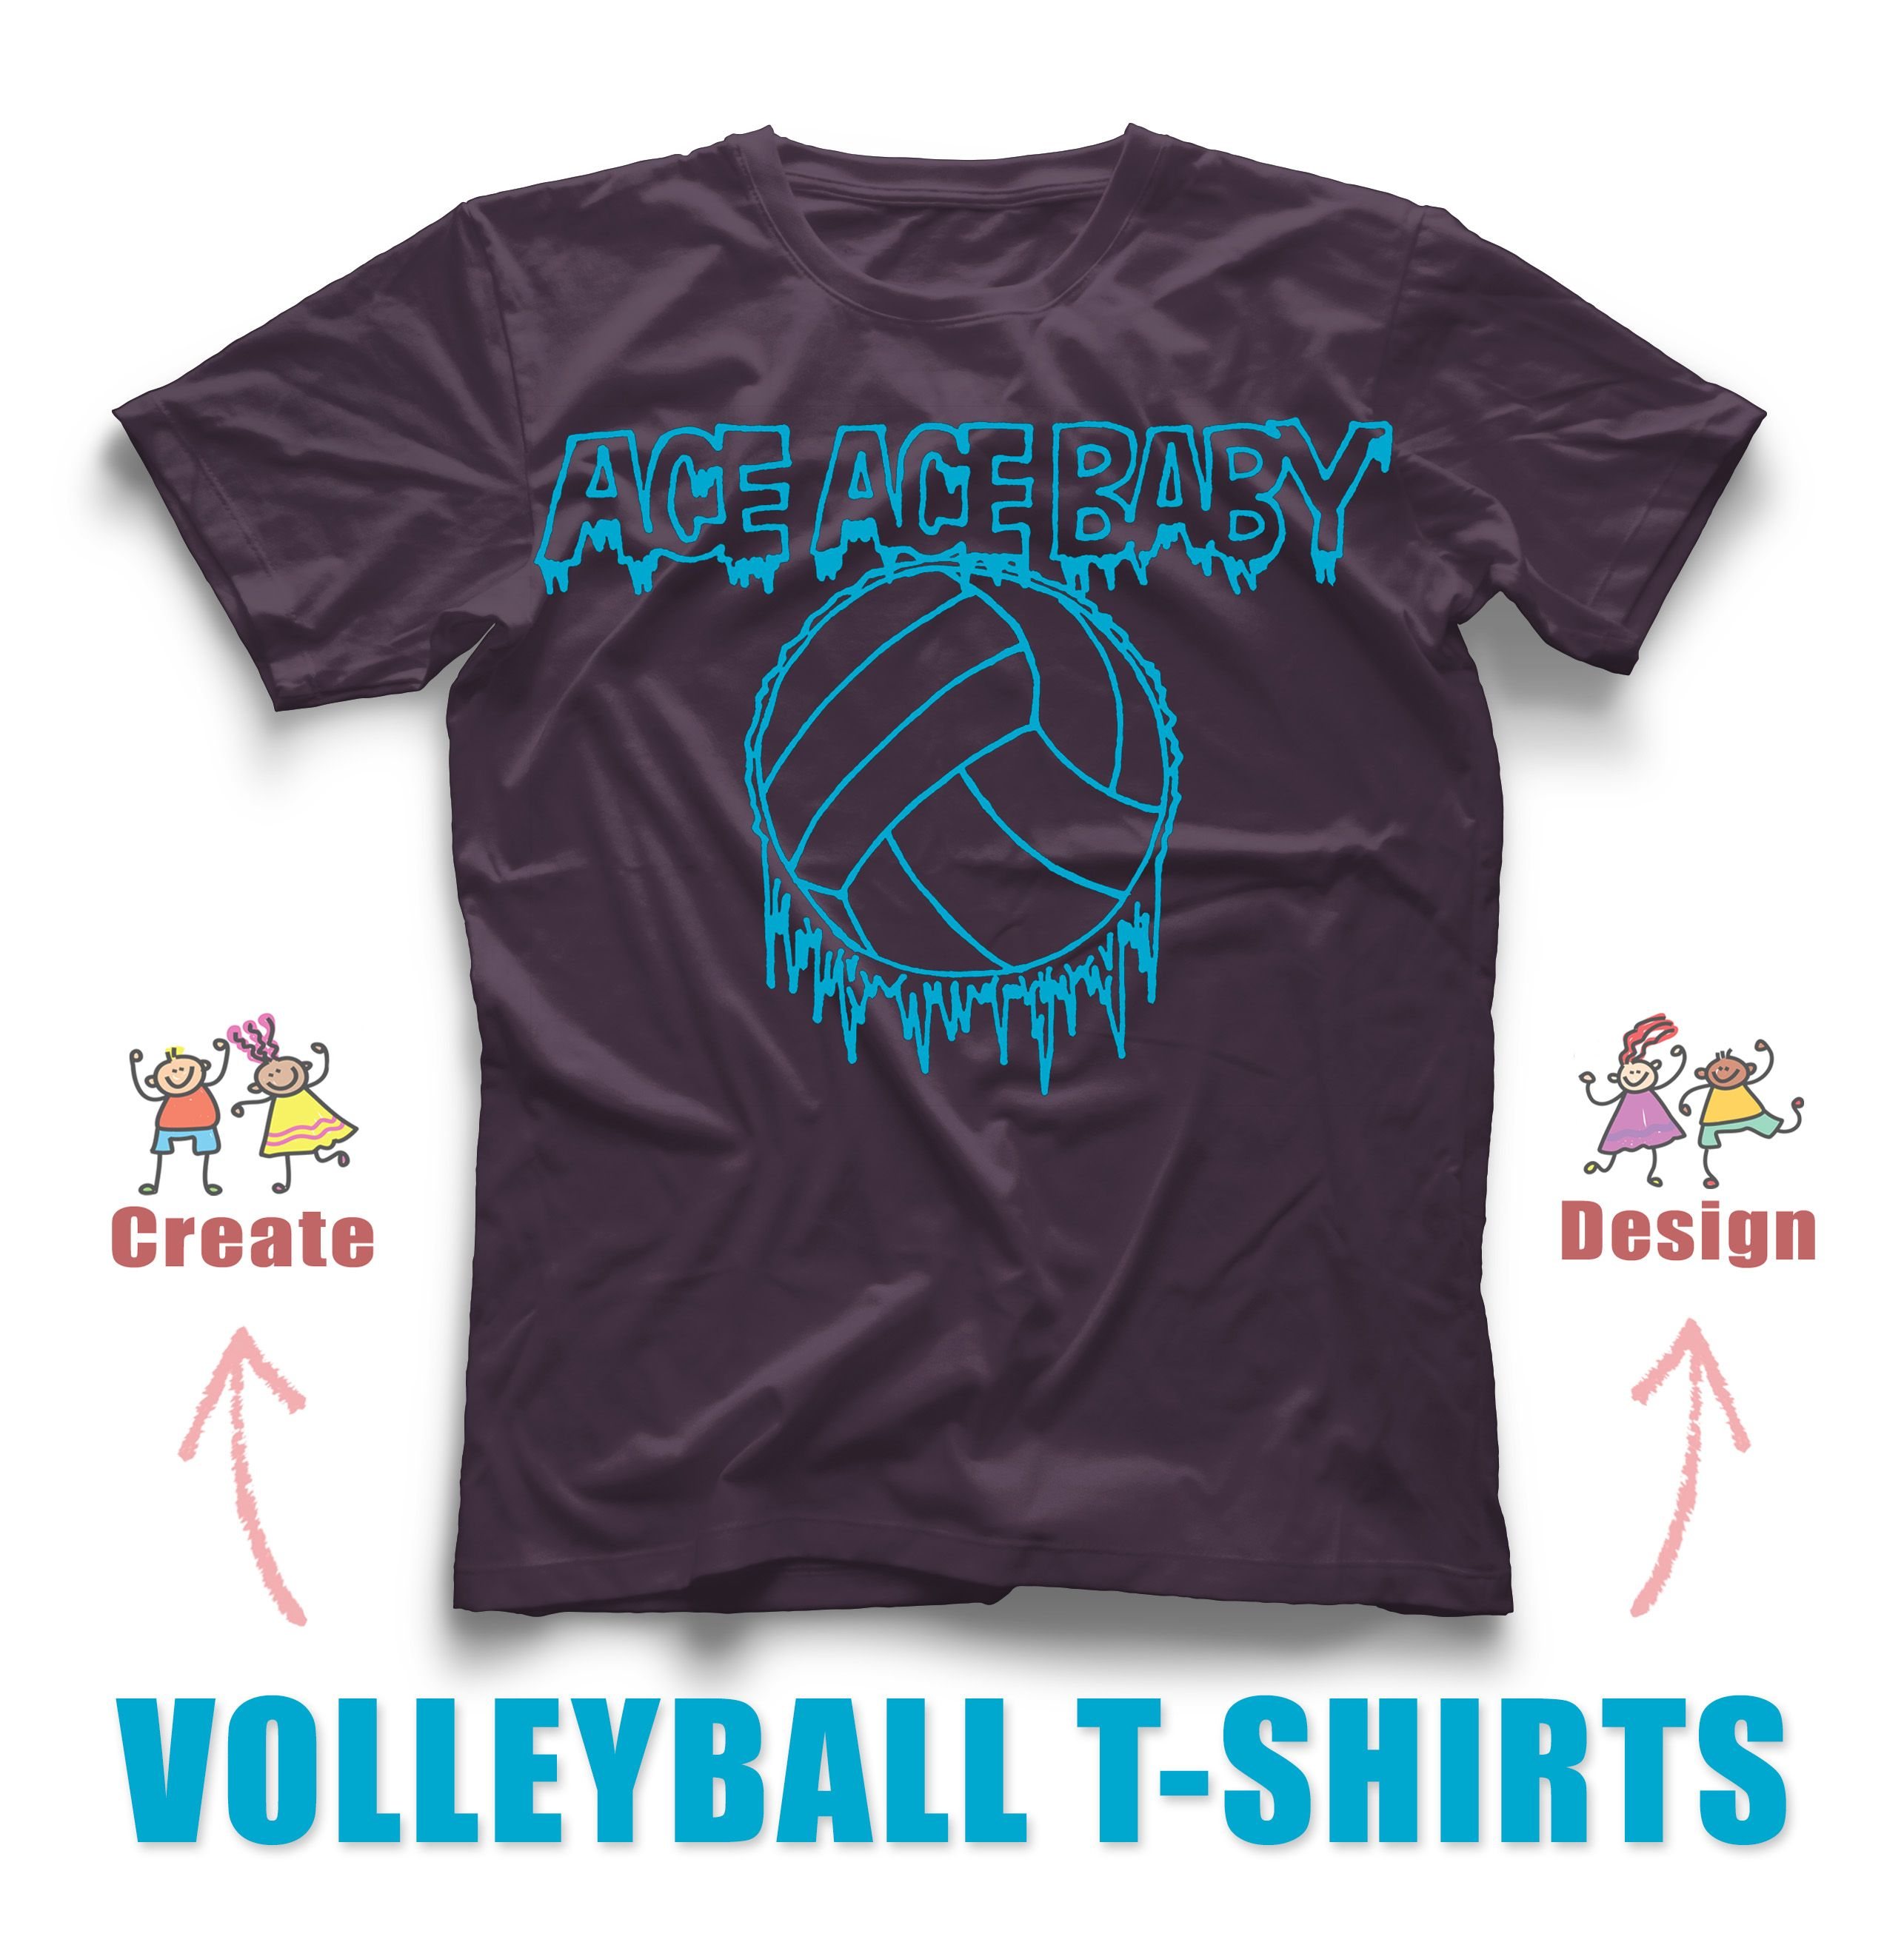 Ace Ace Ace Baby Volleyball Custom T Shirt Design Idea For Your